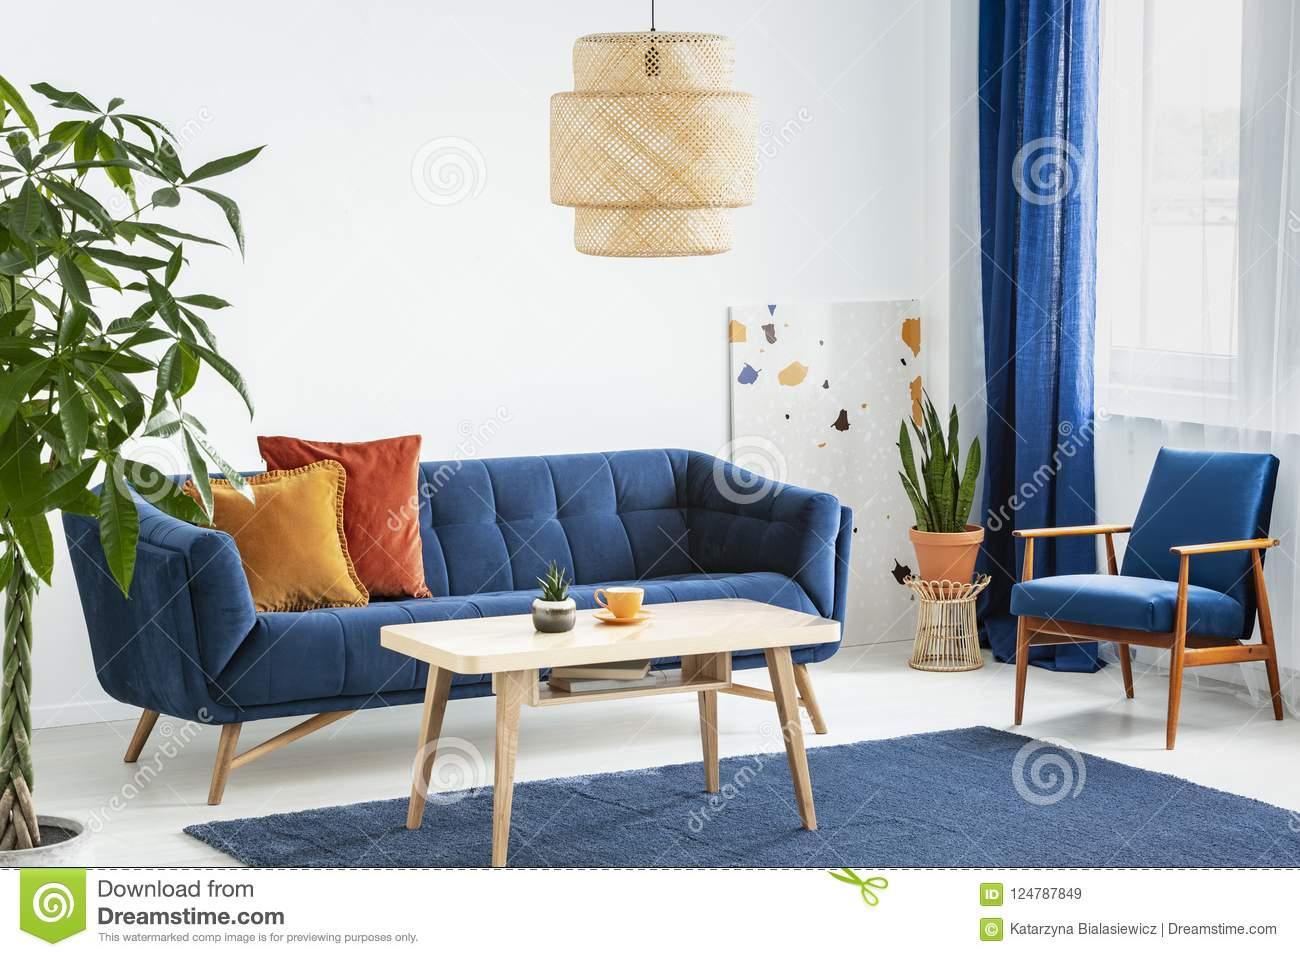 Armchair And Sofa In Blue And Orange Living Room Interior With Lamp